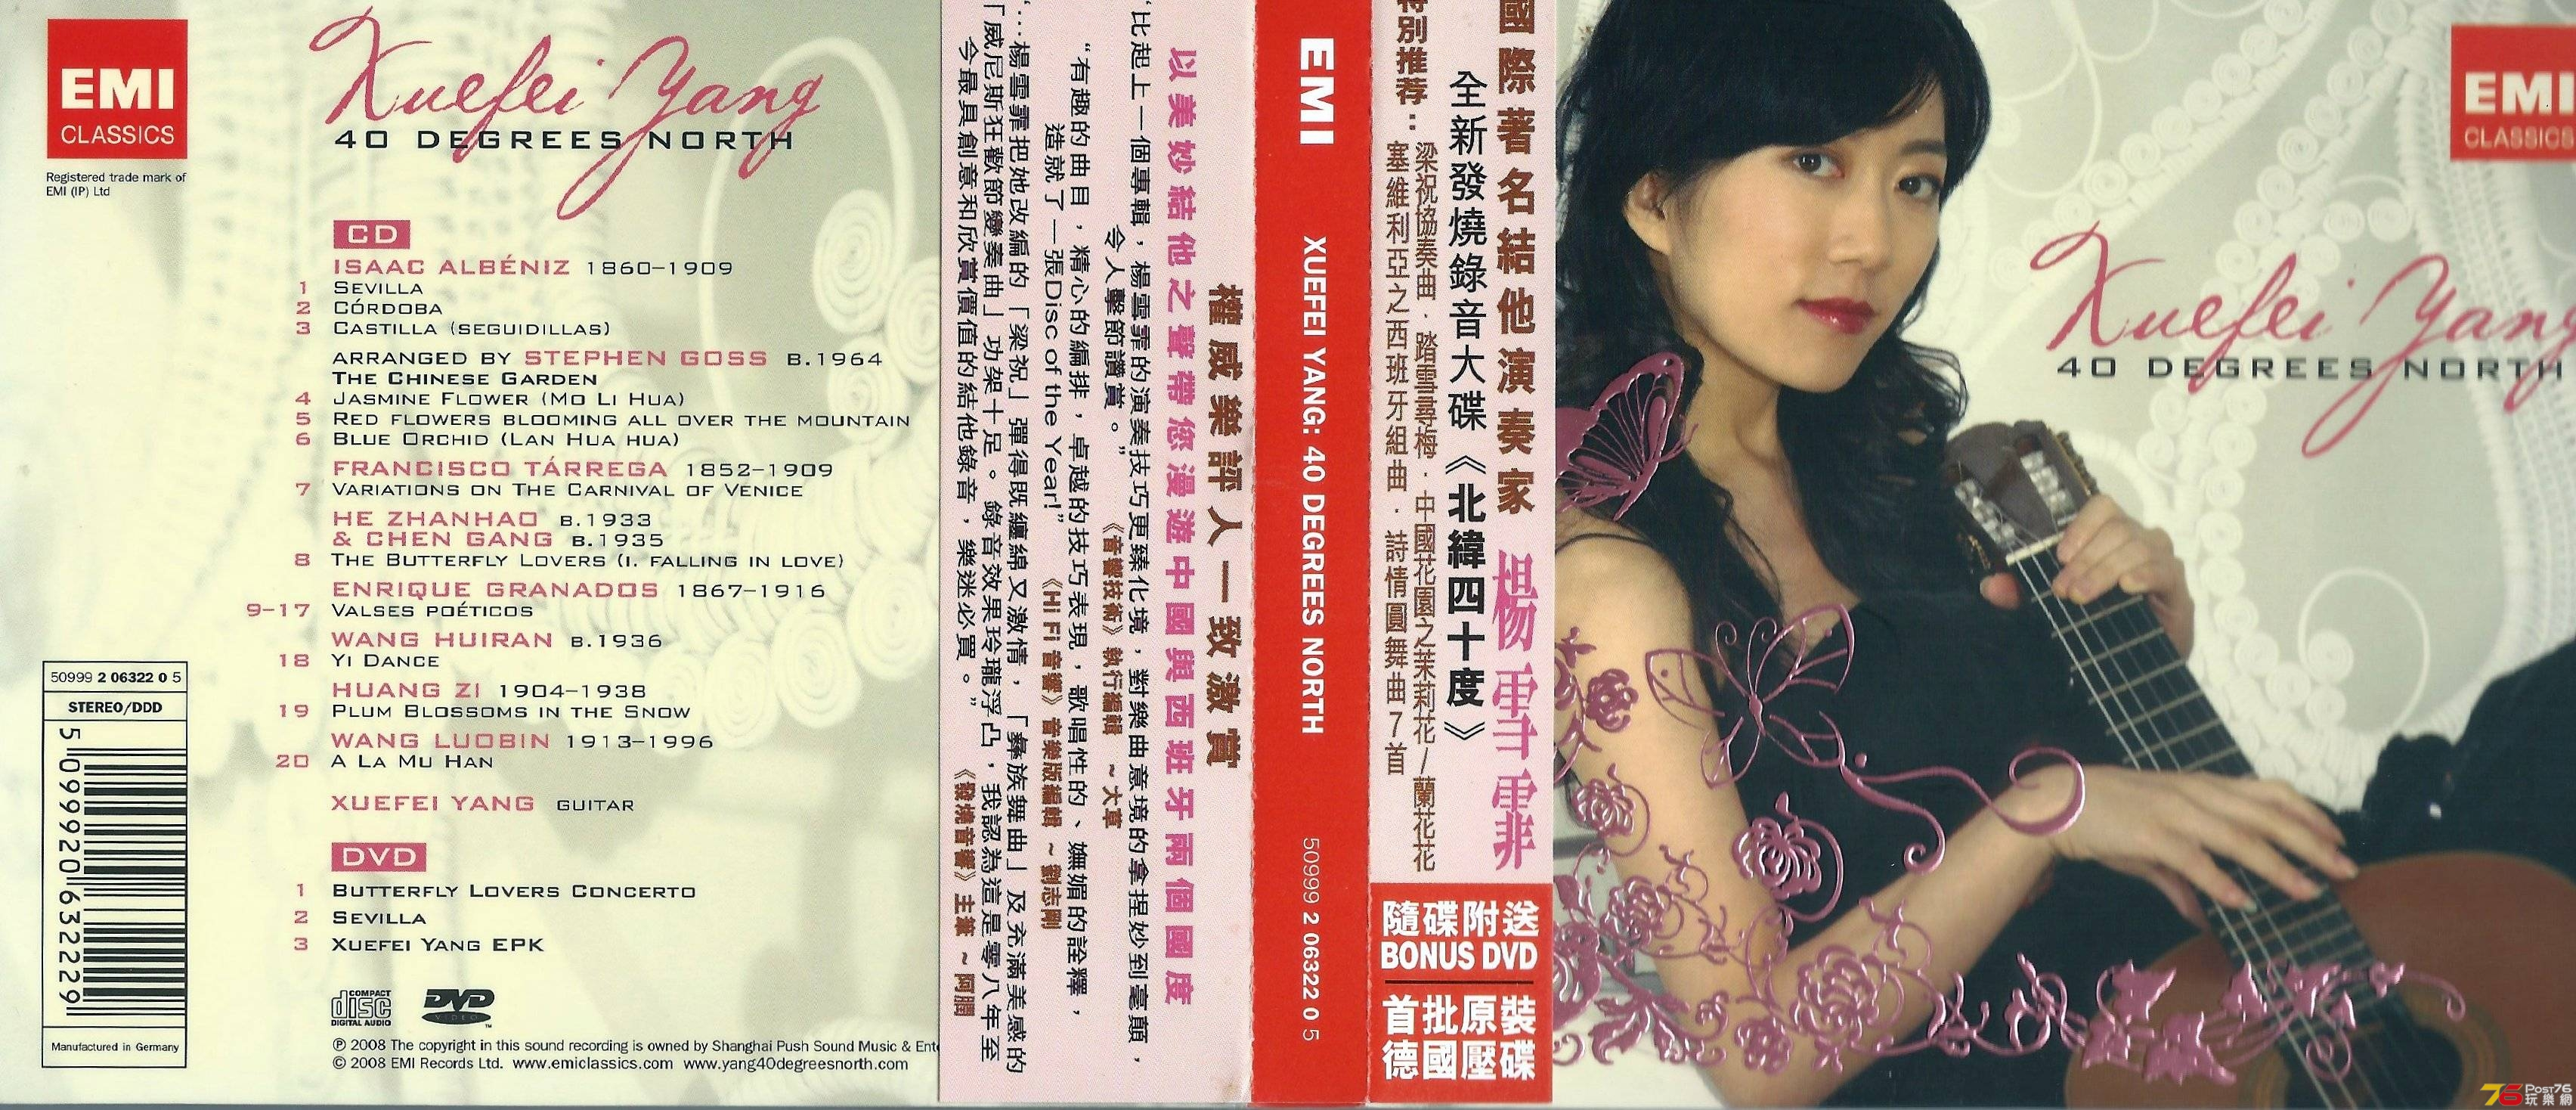 楊雪霏 Yang Xuefei  2008 40 Degrees North CD+DVD a-001.JPG